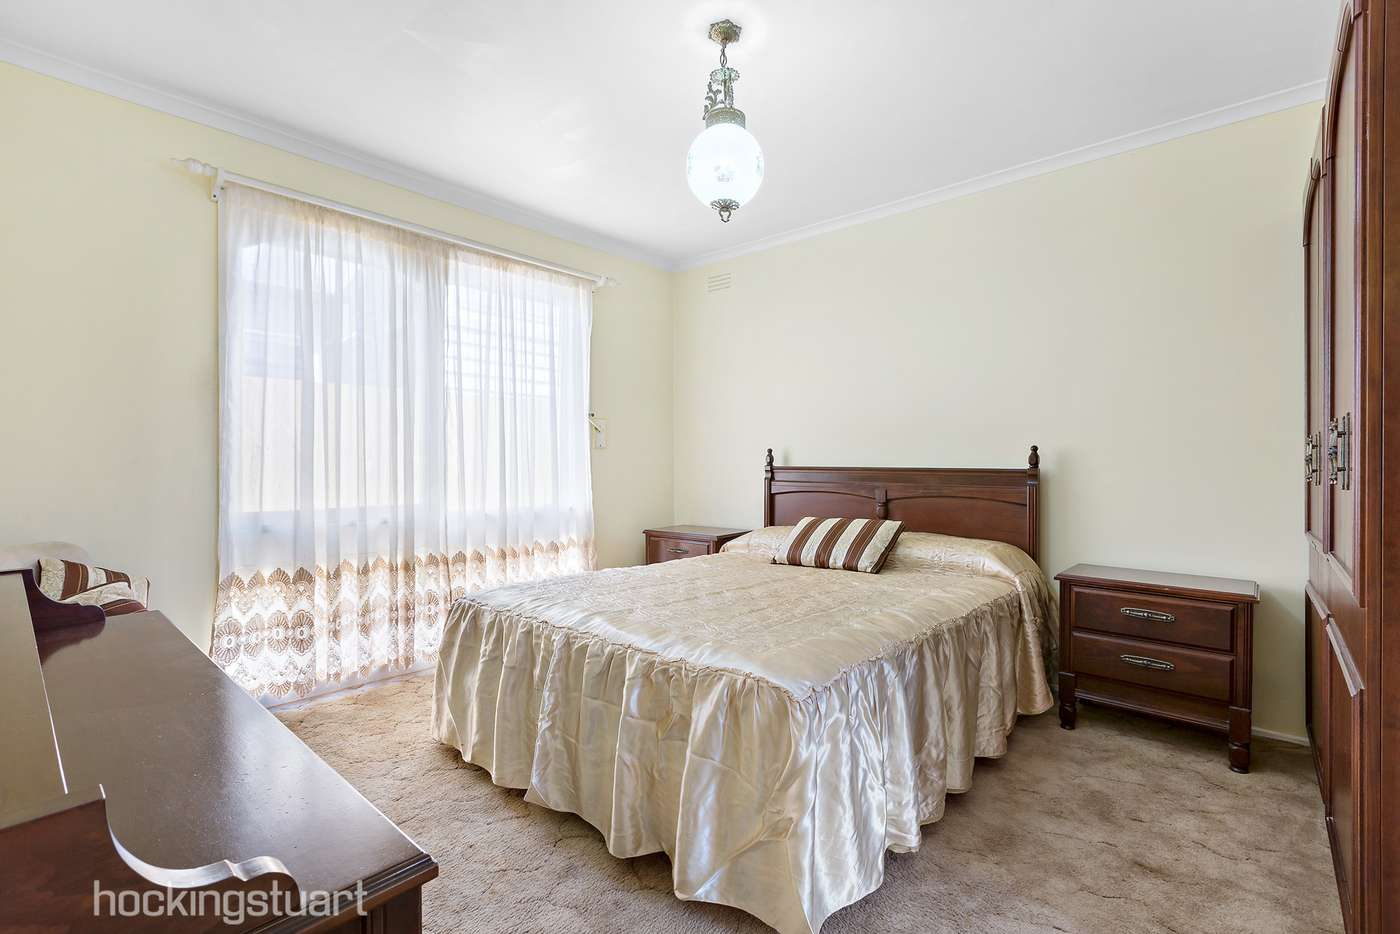 Seventh view of Homely house listing, 135 Aitken Street, Williamstown VIC 3016